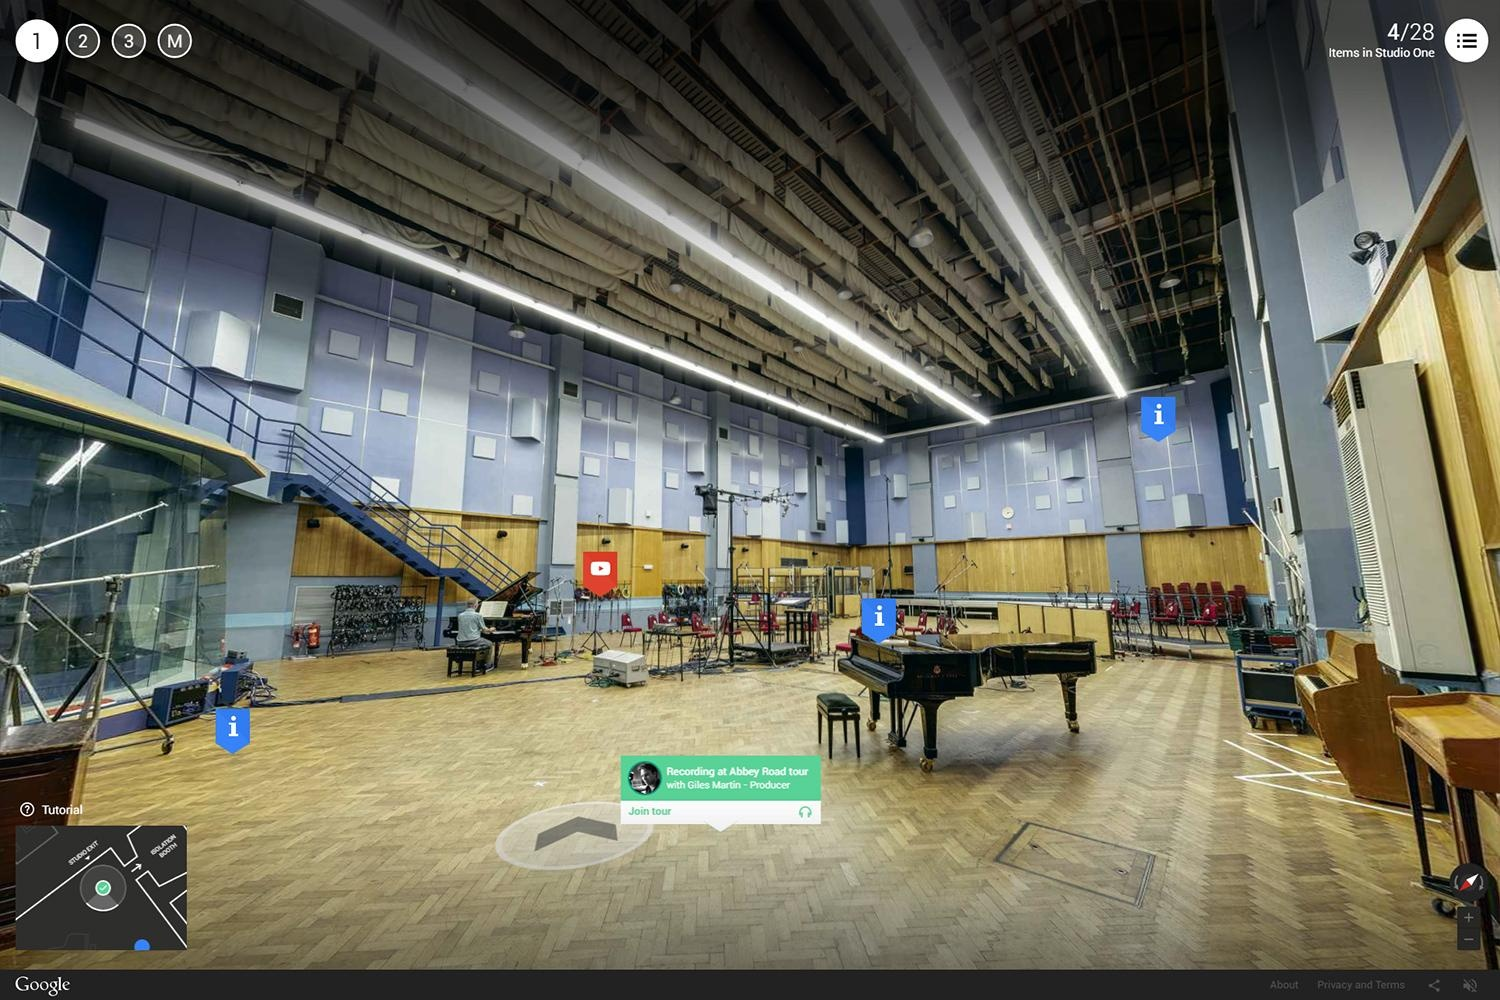 abbey-road-studio-google-interactive-tour-studio-14-1500x1000